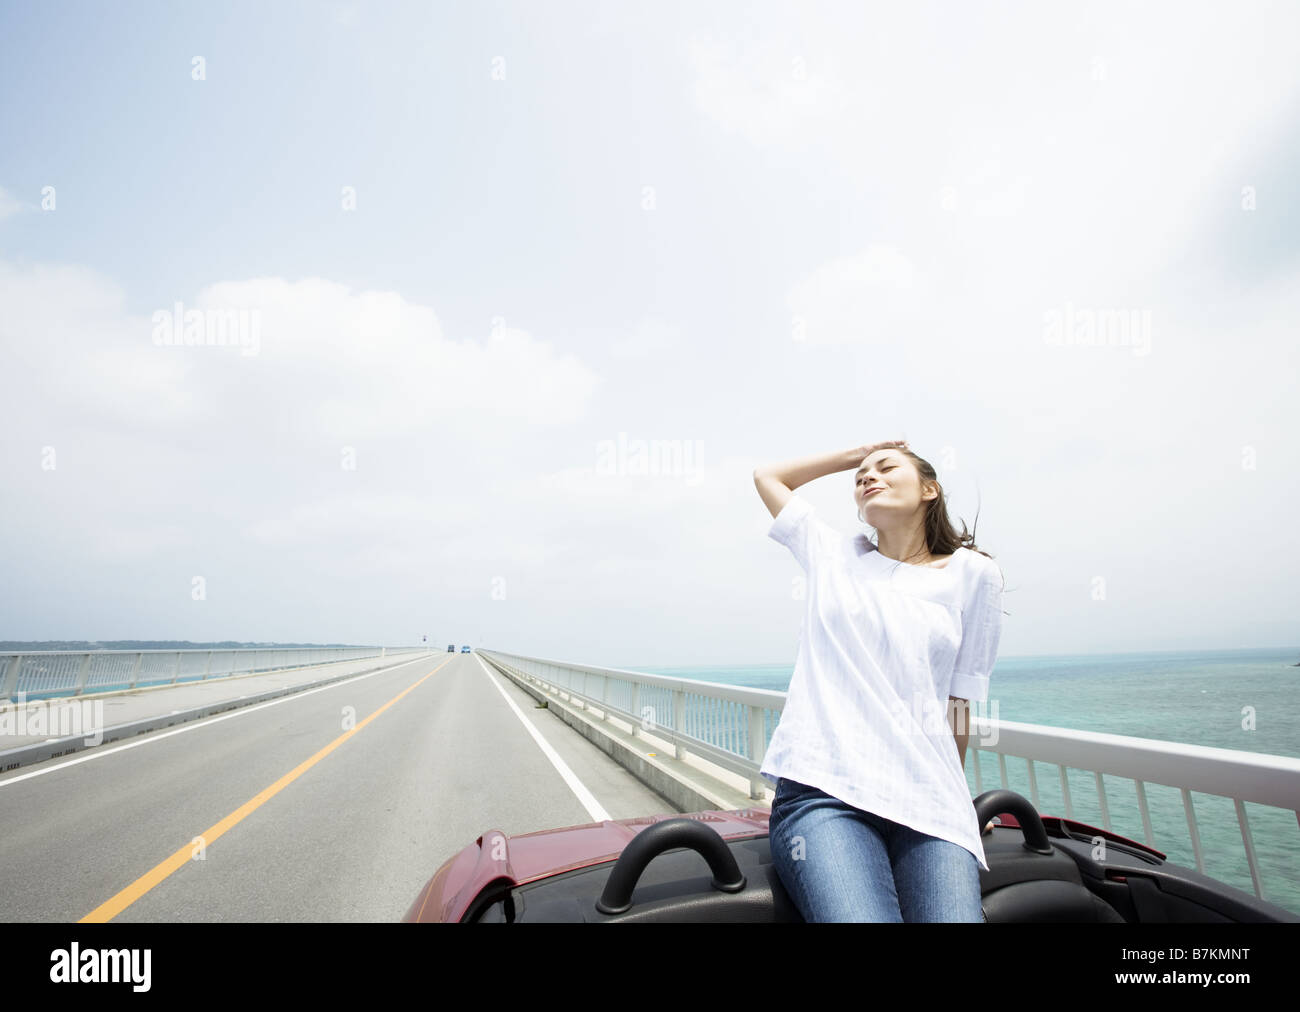 A young woman in a convertible - Stock Image